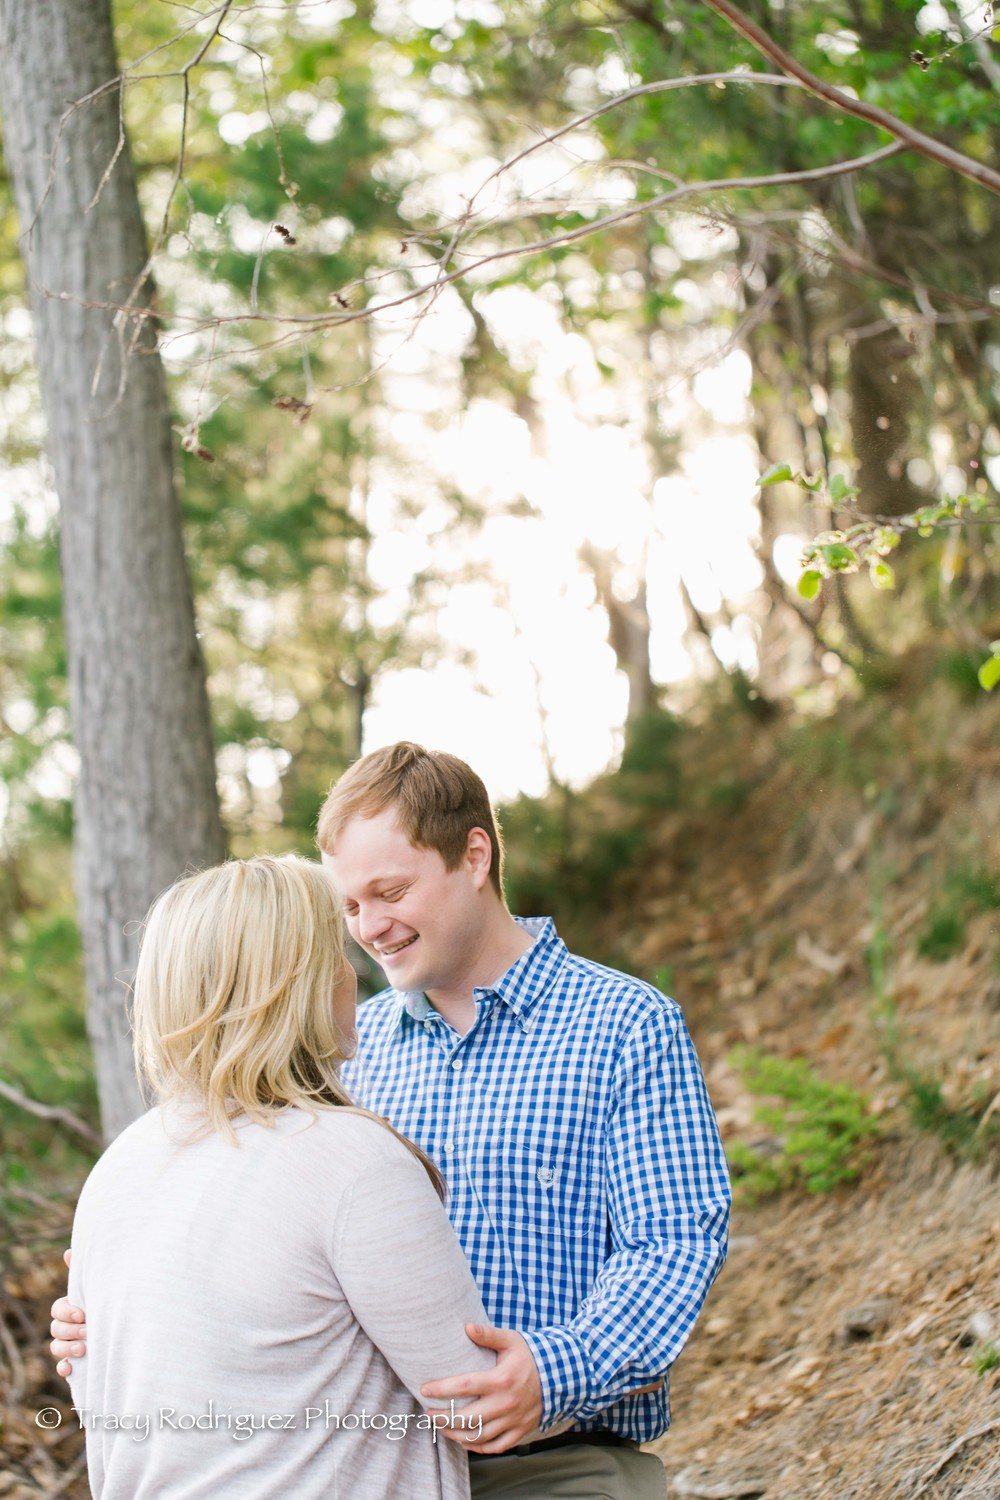 TracyRodriguezPhotography-Engagement-LowRes-31.jpg